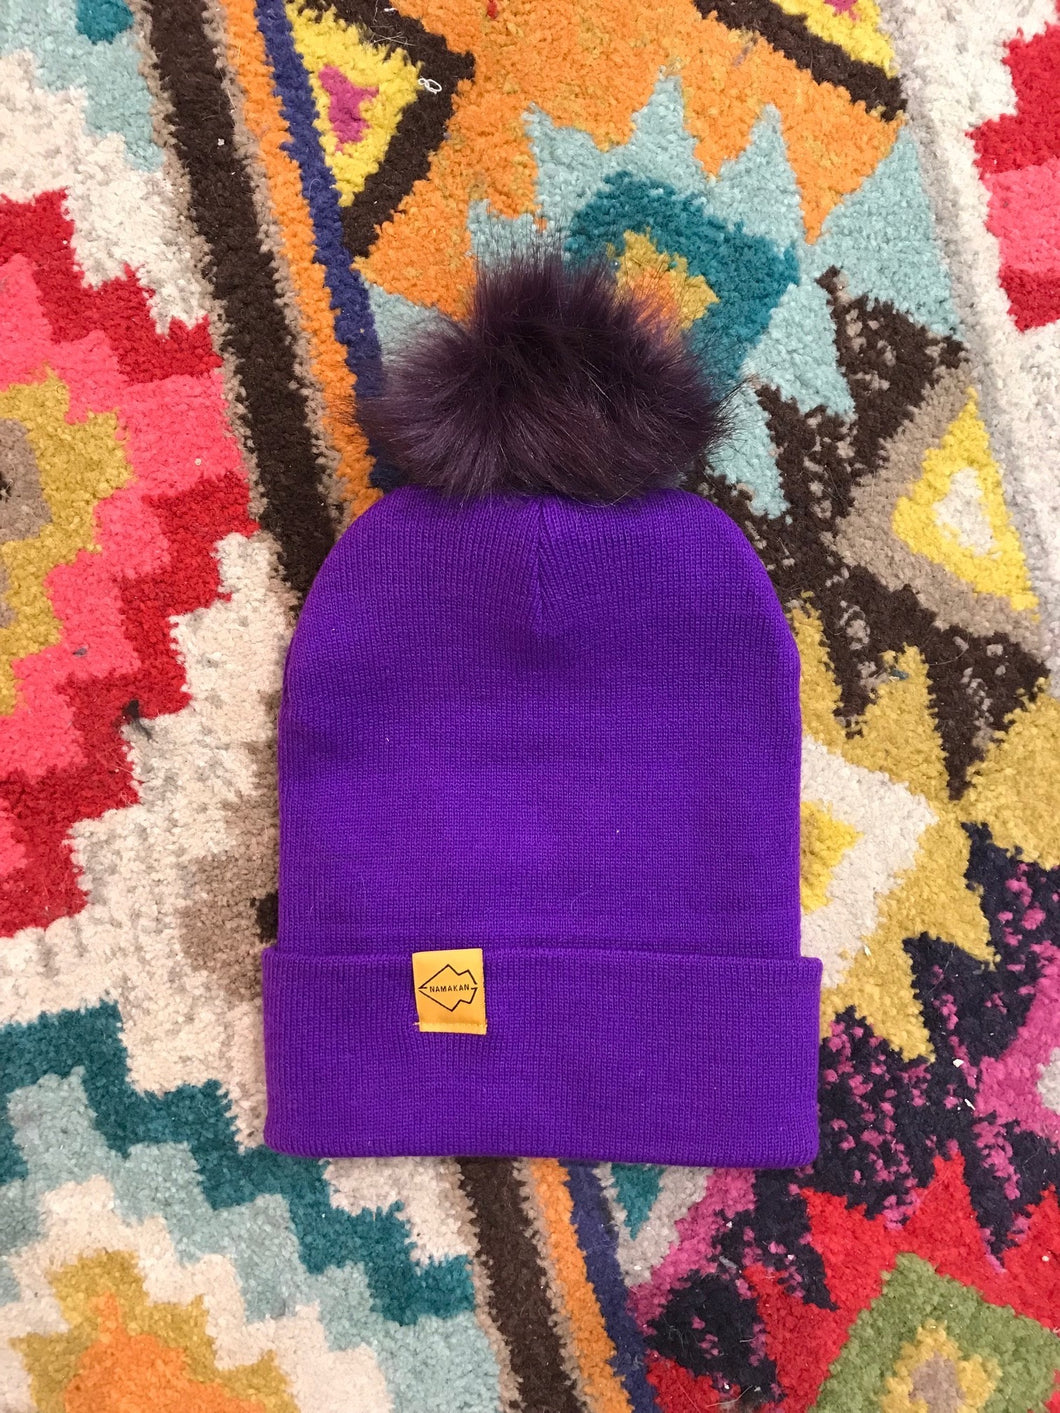 Special Edition SKOL Hats! Vikings pom pom hat purple gold